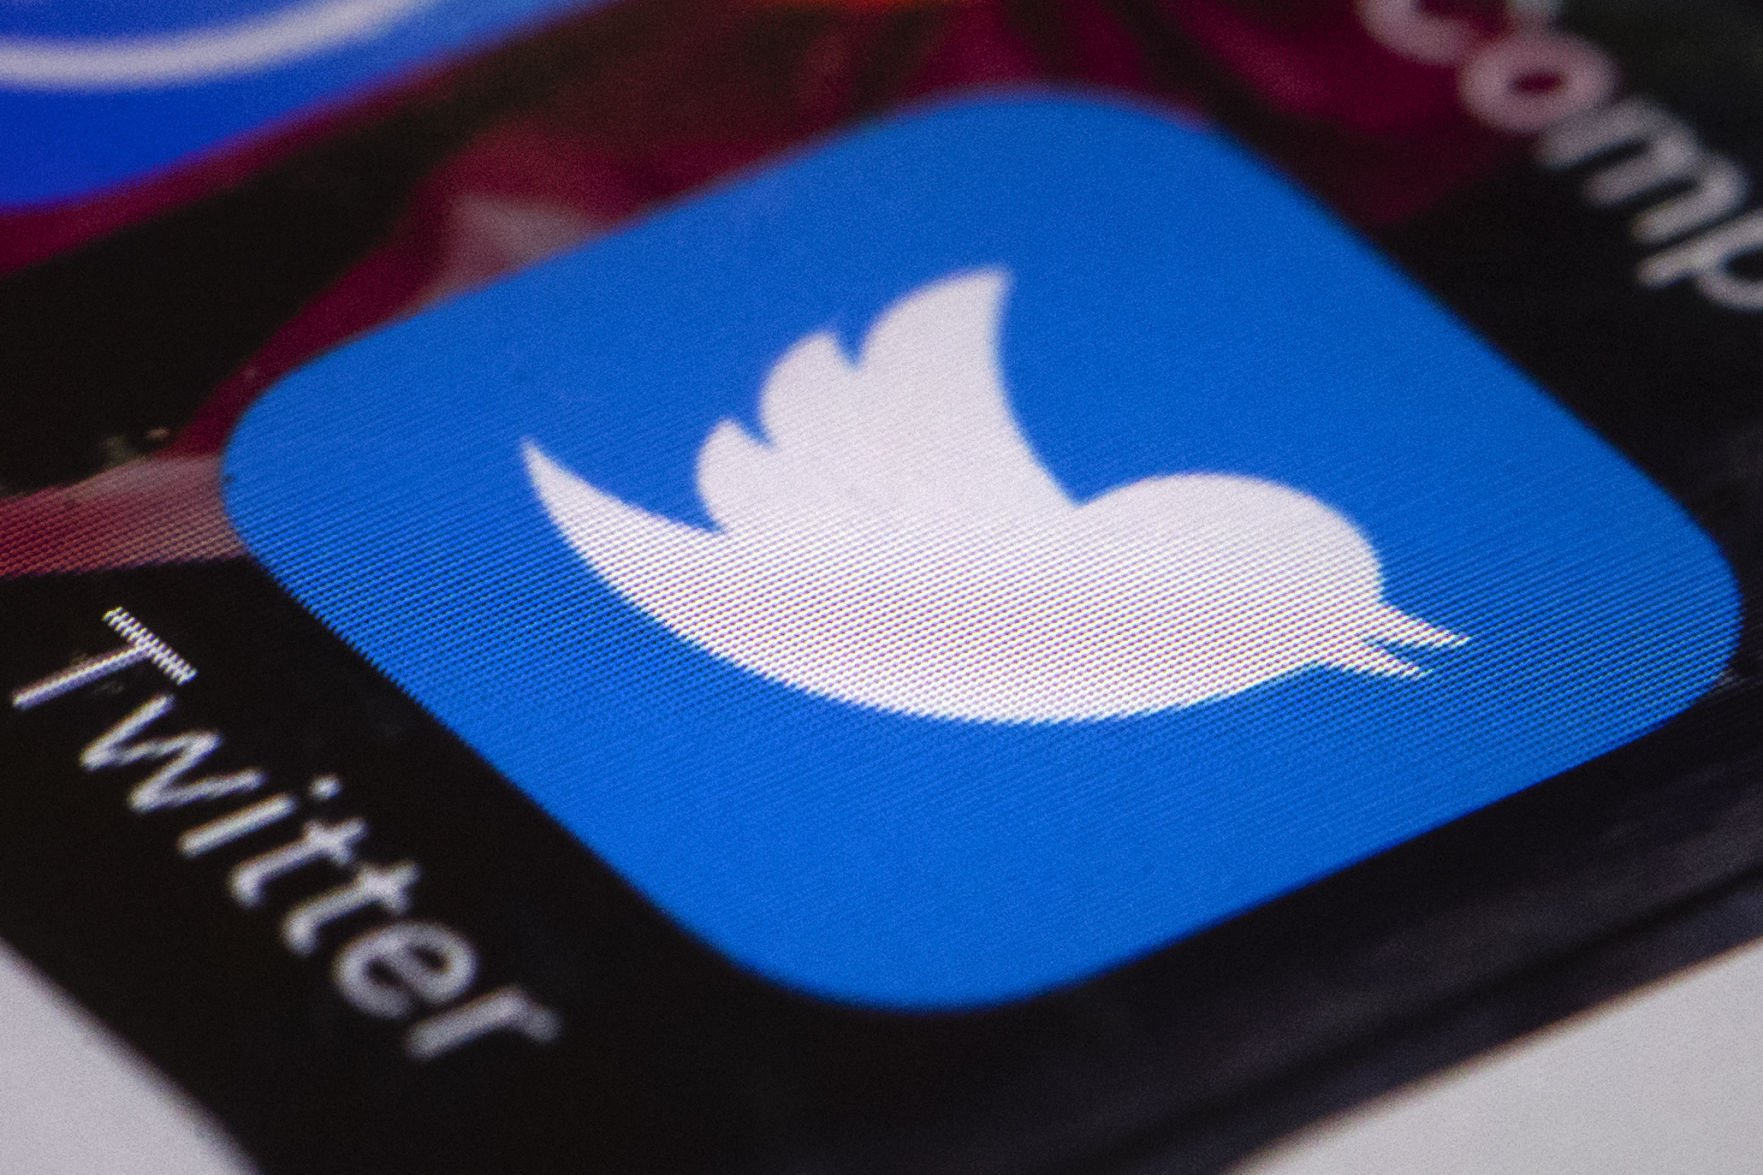 Twitter's Shocking Report Details How Russian Accounts Bought Ads During Election